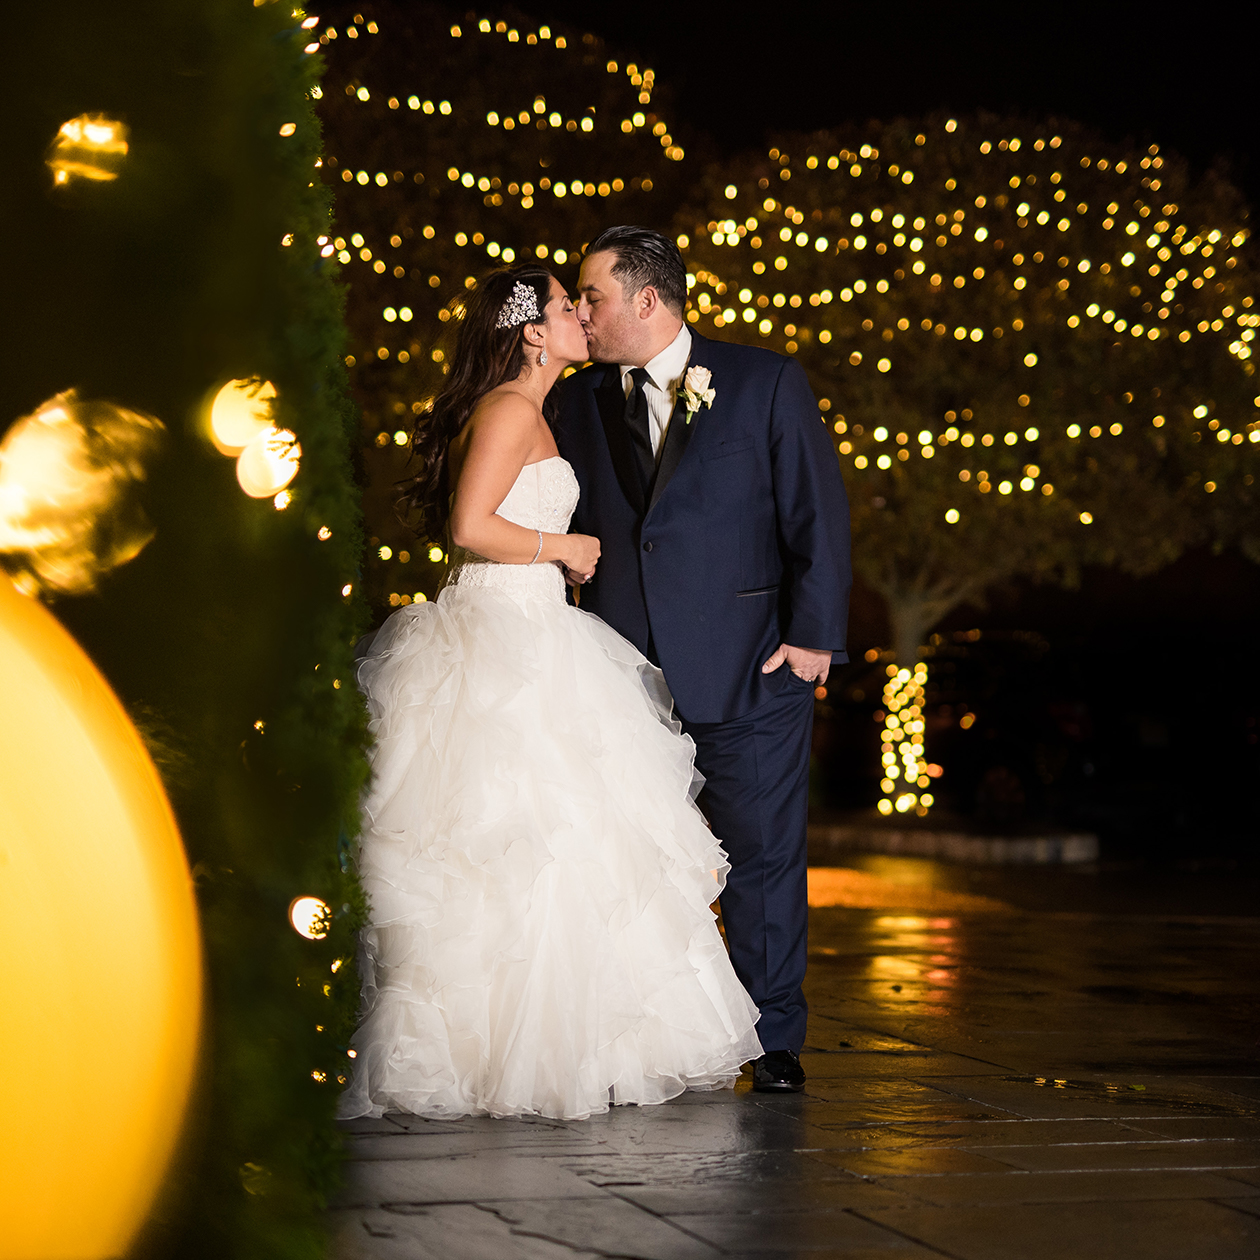 Bride and groom kissing in front of trees with string lights